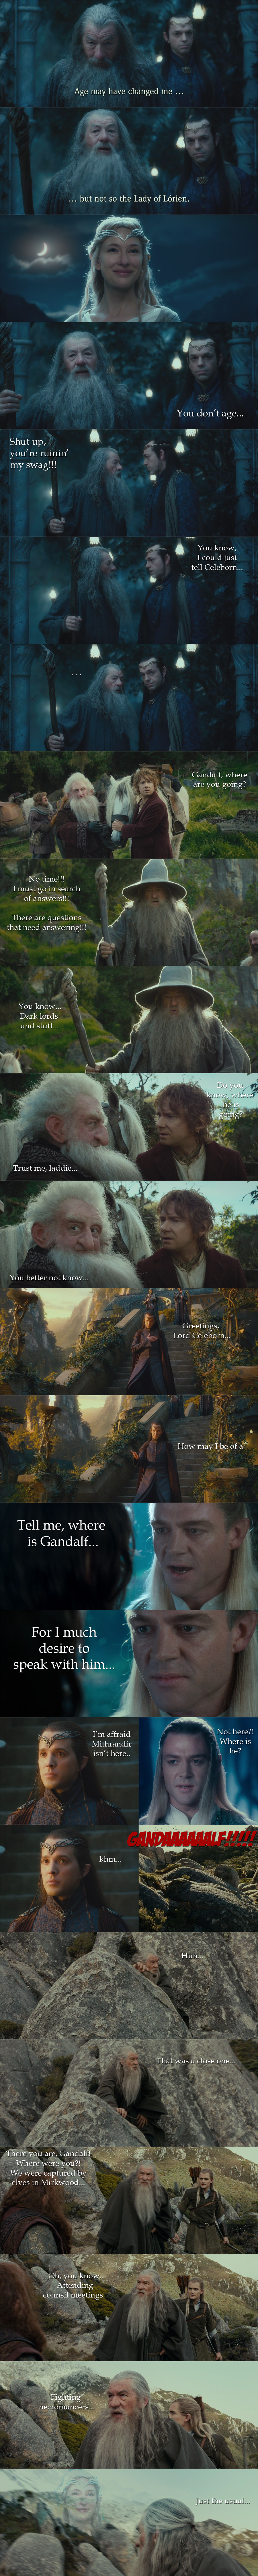 The Hobbit - The many adventures of Gandalf... by yourparodies